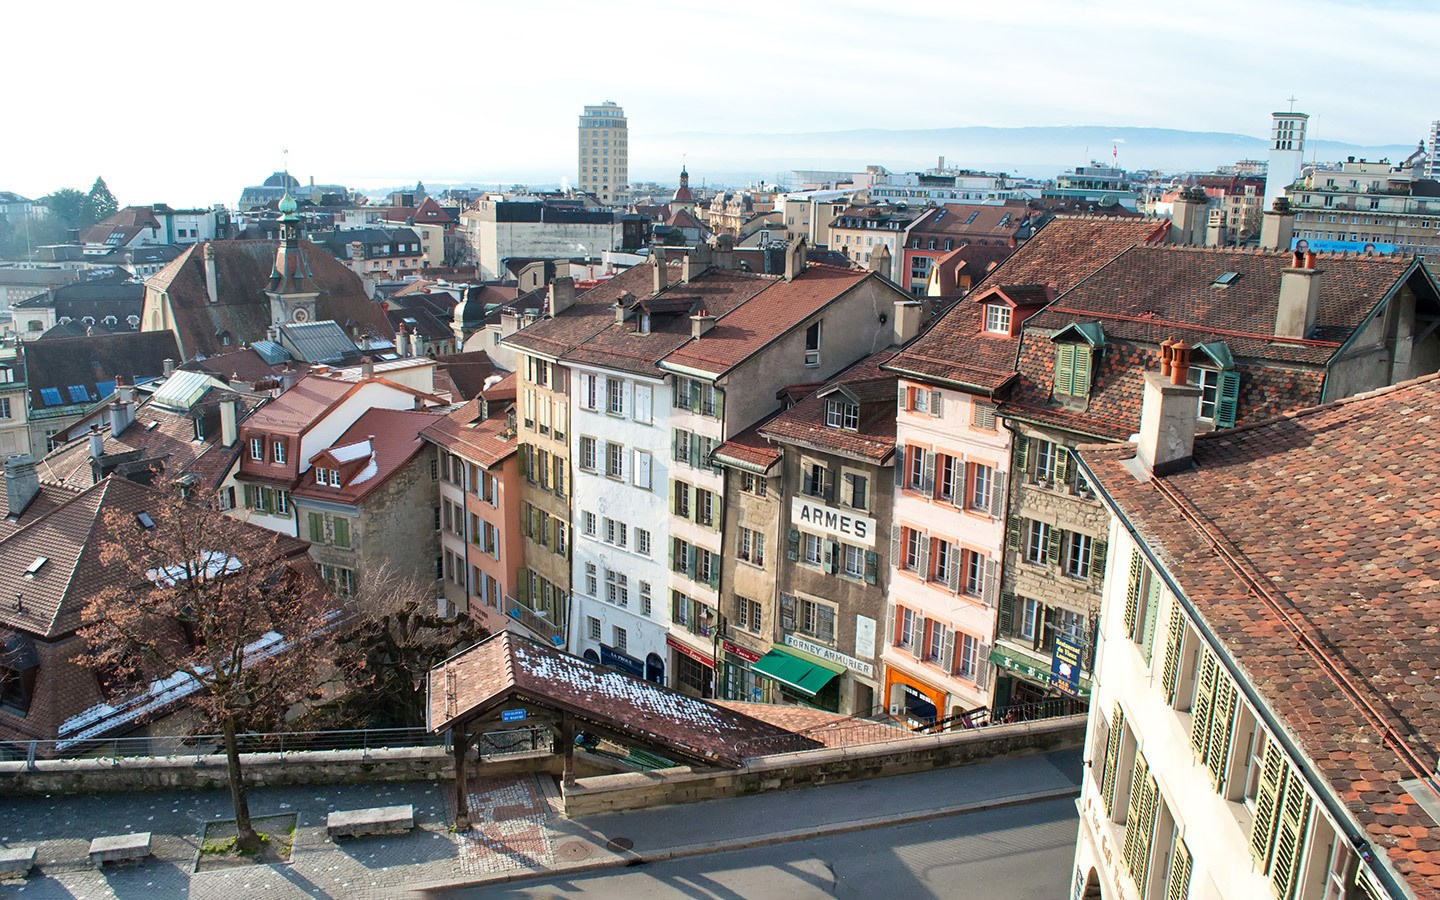 The historic old town of Lausanne, Switzerland